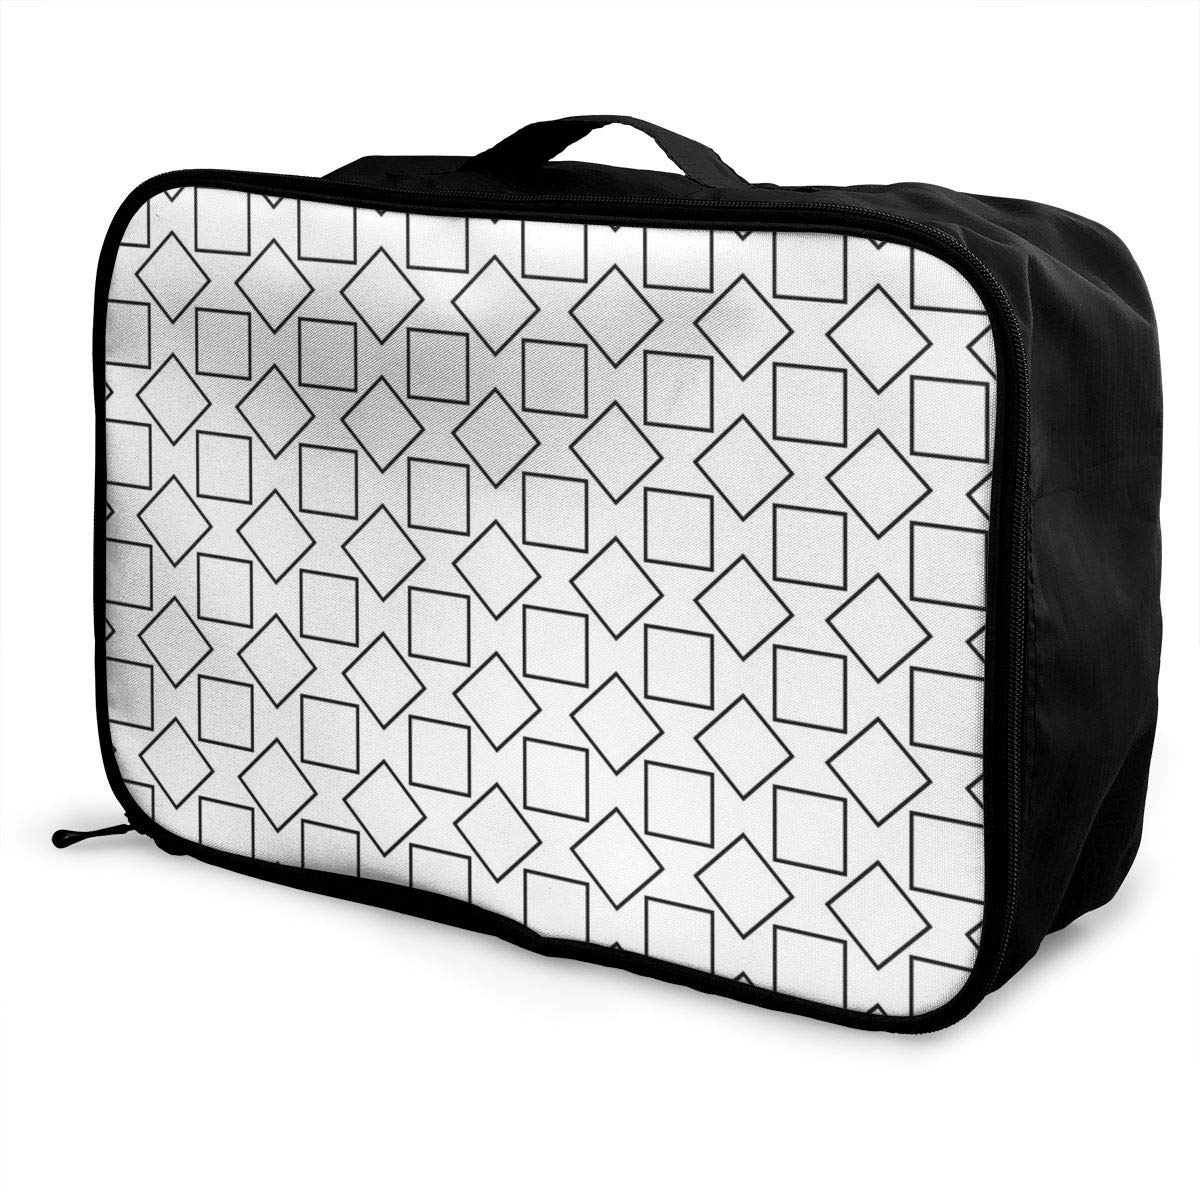 Black And White Art Effect Travel Lightweight Waterproof Foldable Storage Carry Luggage Large Capacity Portable Luggage Bag Duffel Bag